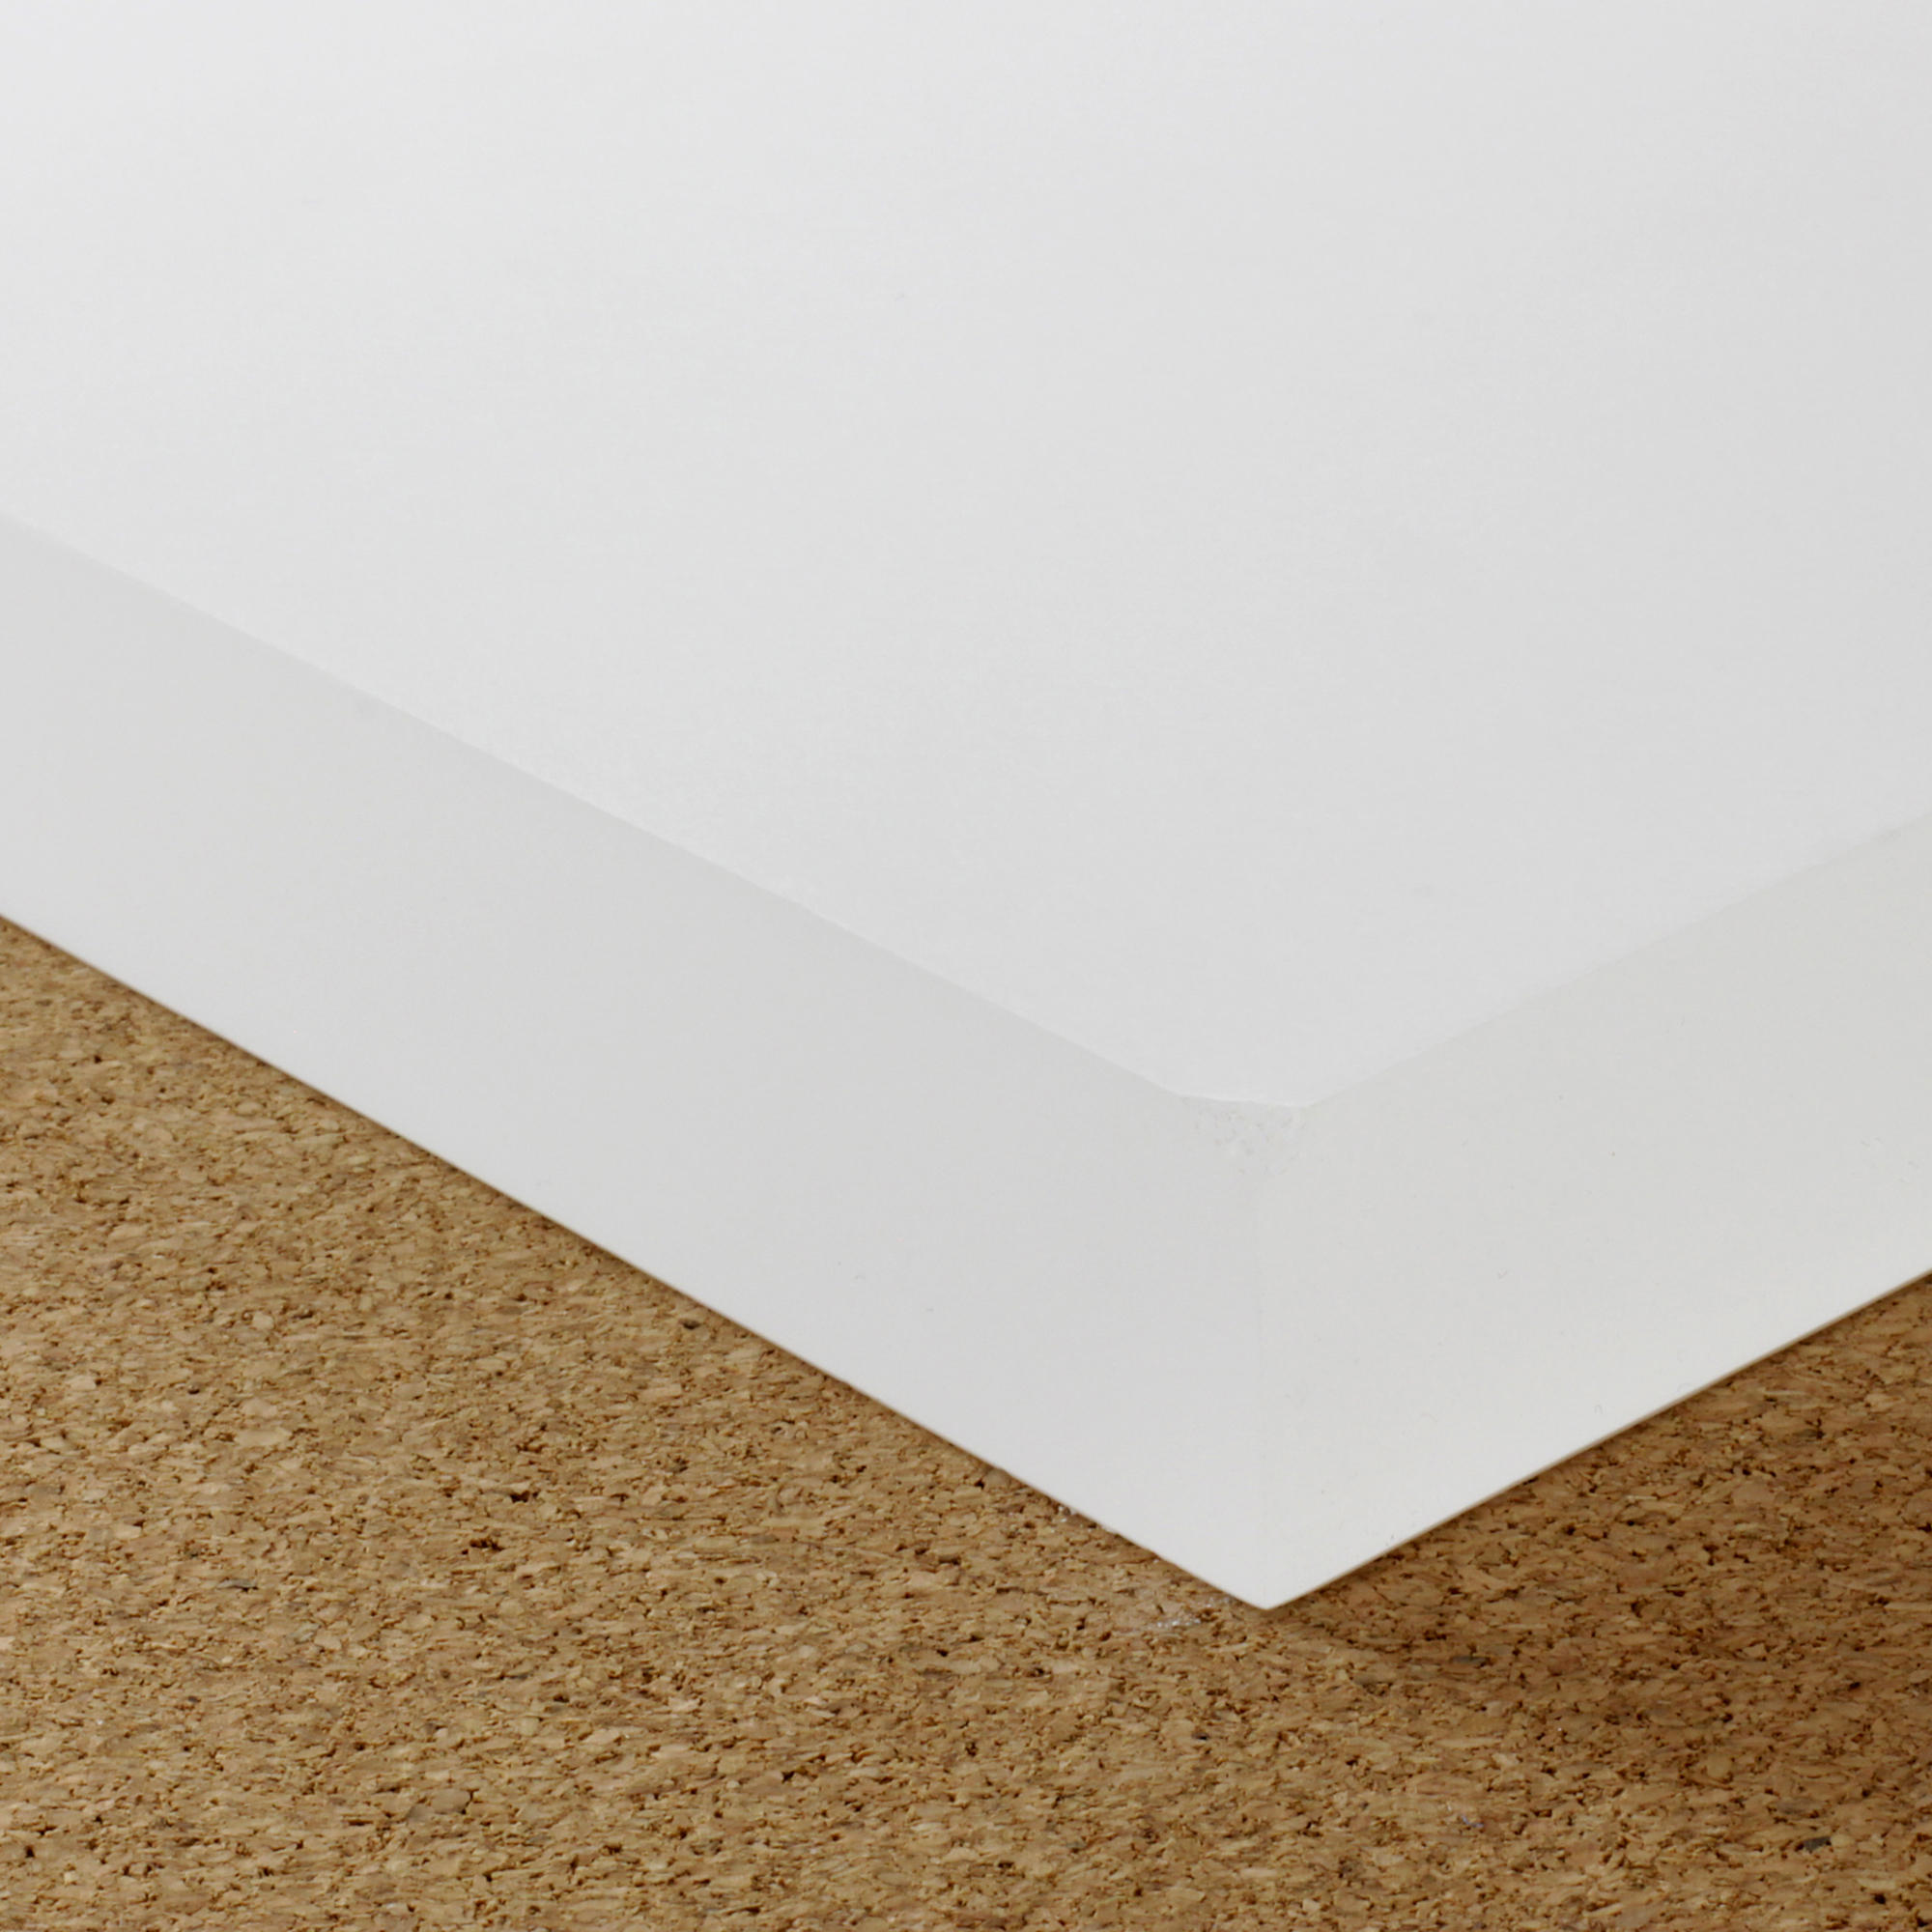 3 Form Acrylic Panels : Mm translucent cast acrylic plastics from selected by